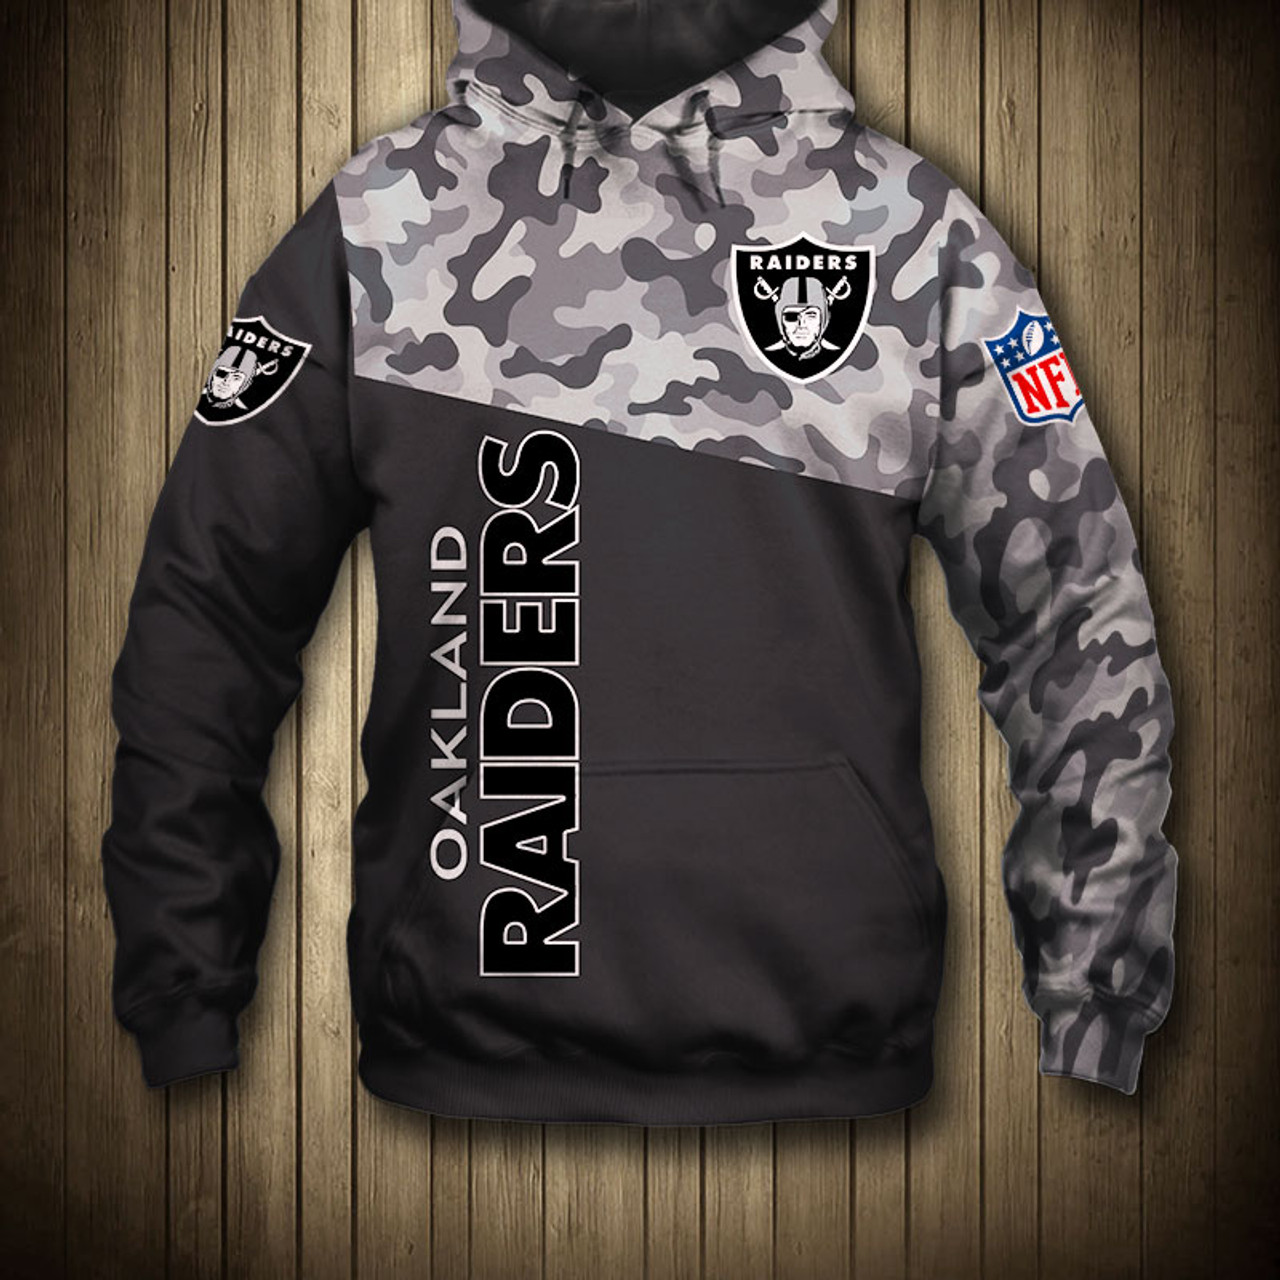 separation shoes 9ca31 9860f **(OFFICIAL-N.F.L.OAKLAND-RAIDERS-CAMO.DESIGN-PULLOVER-HOODIES/3D-CUSTOM-RAIDERS-LOGOS  & OFFICIAL-RAIDERS-TEAM-COLORS/NICE-3D-DETAILED-GRAPHIC-PRINTED...